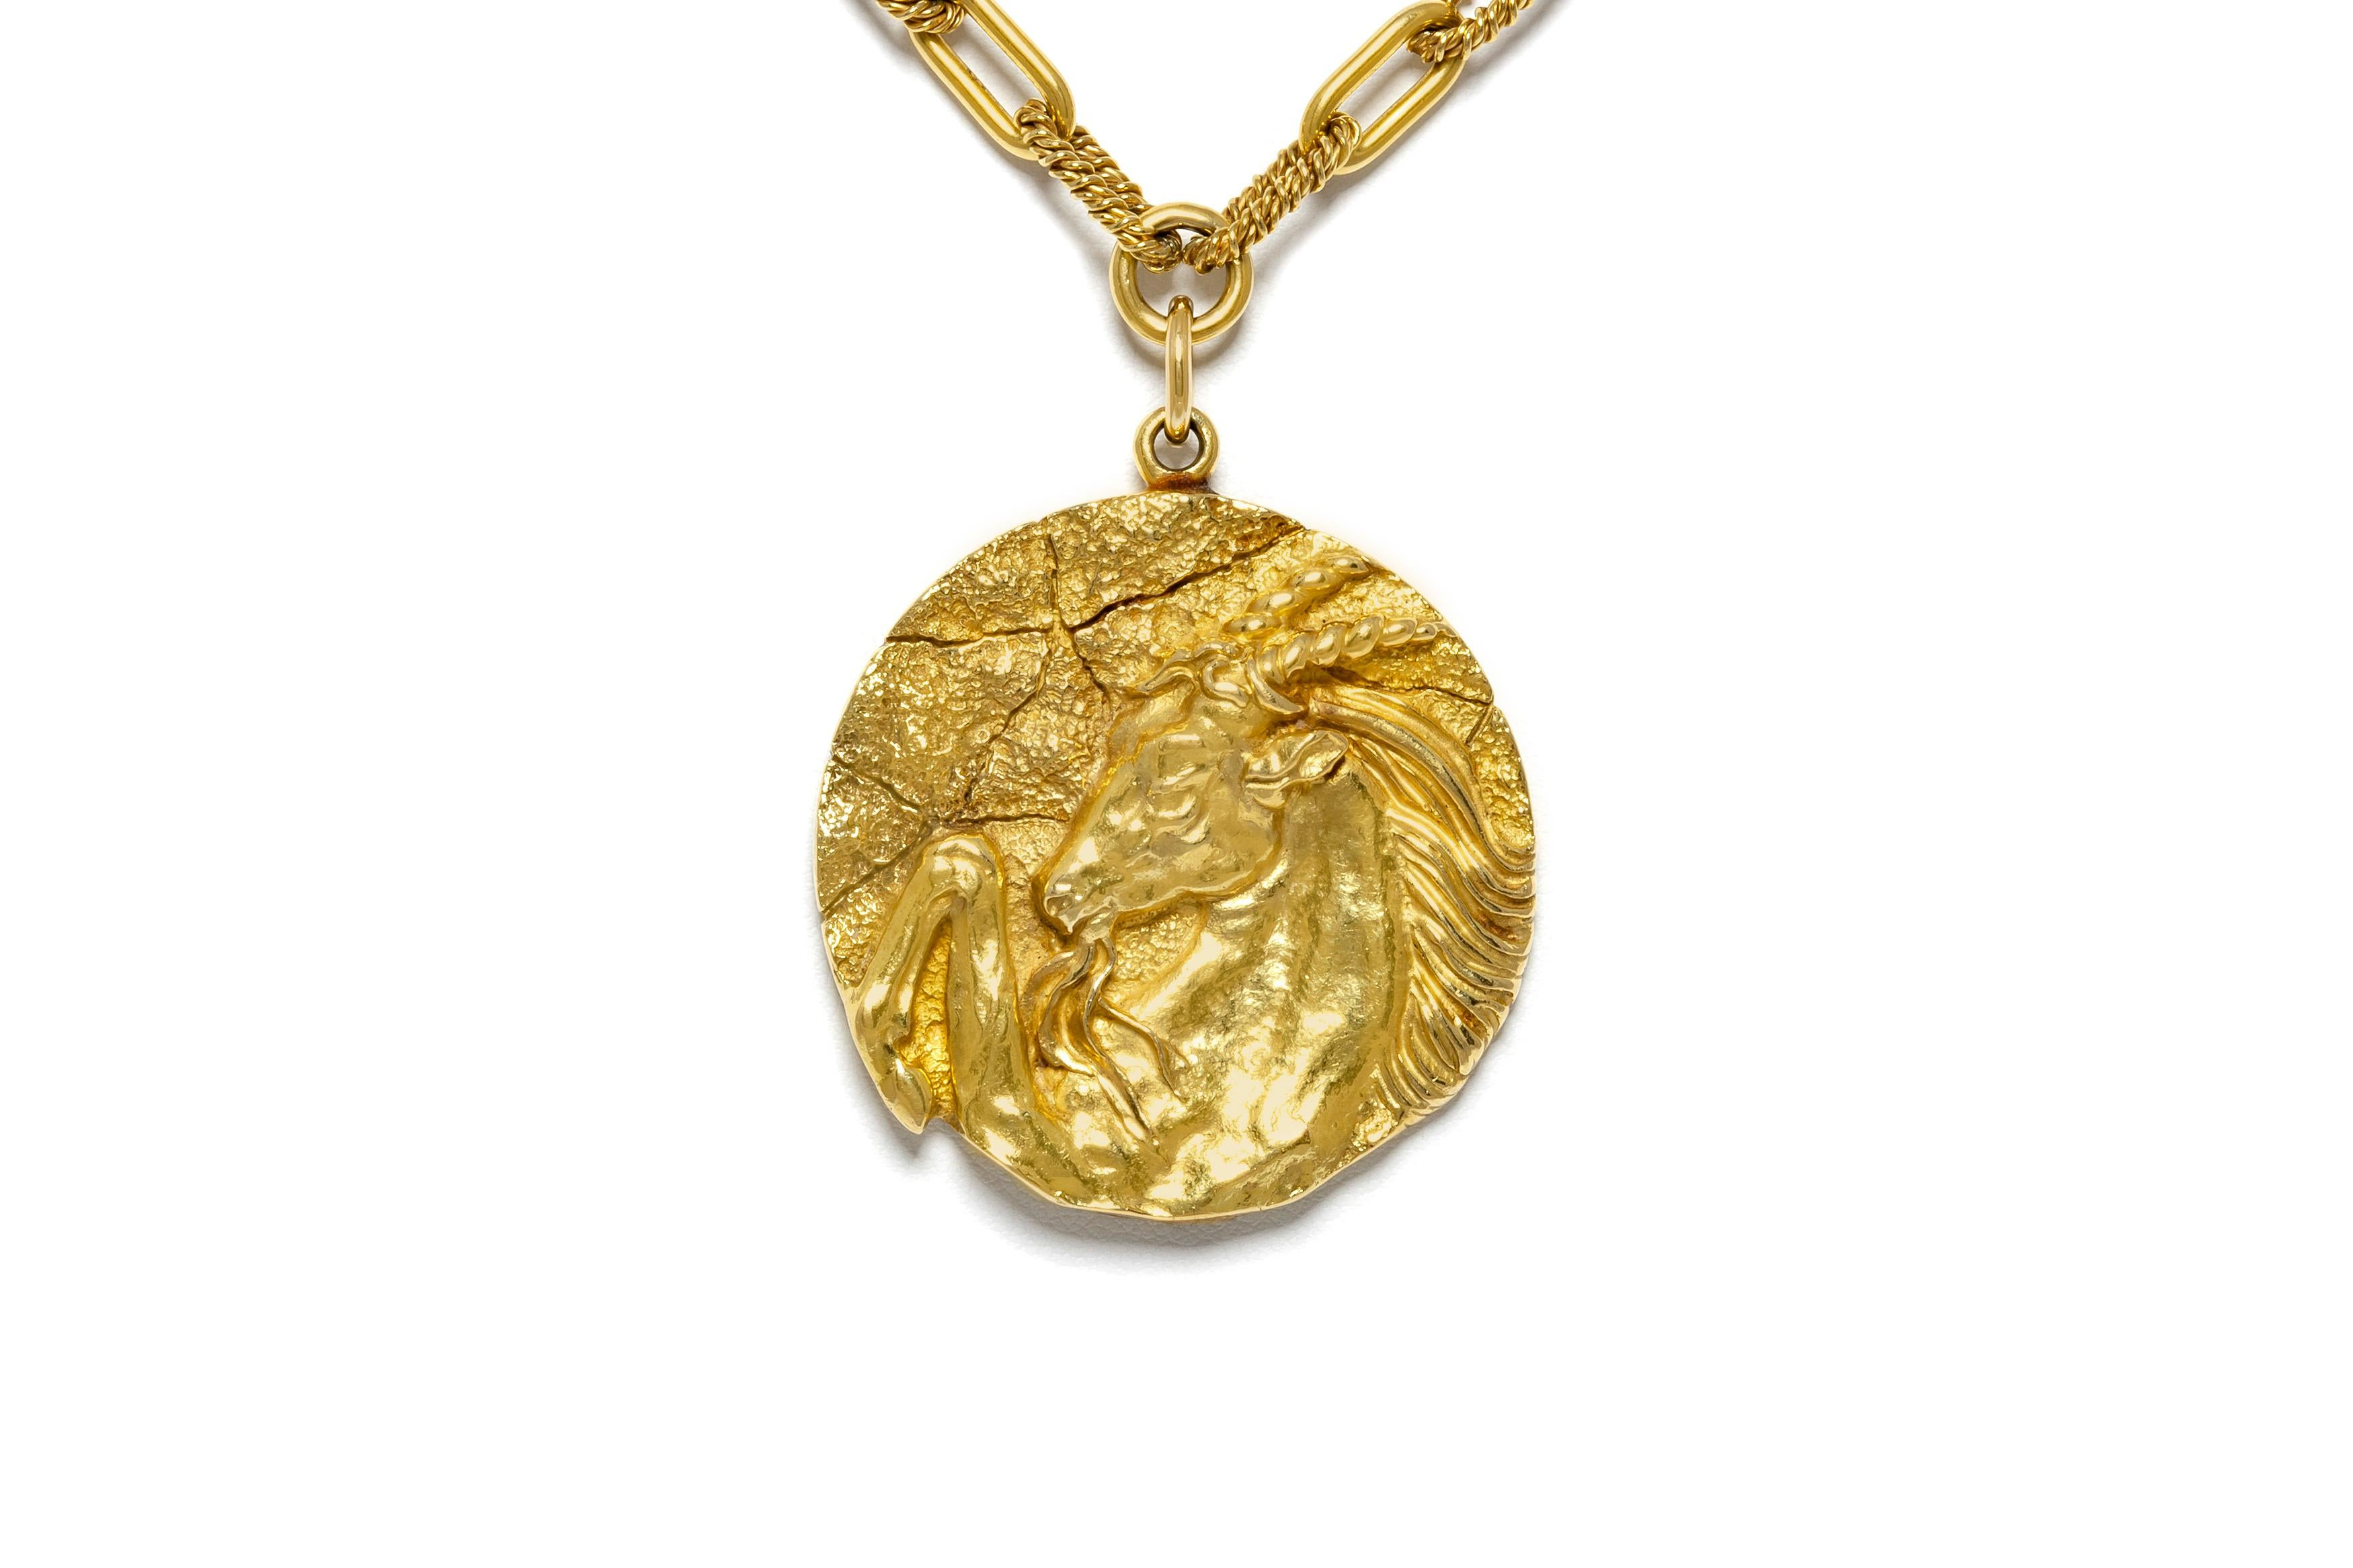 16141aea0 Tiffany and Co. Gold Zodiac Pendant Chain Necklace For Sale at 1stdibs